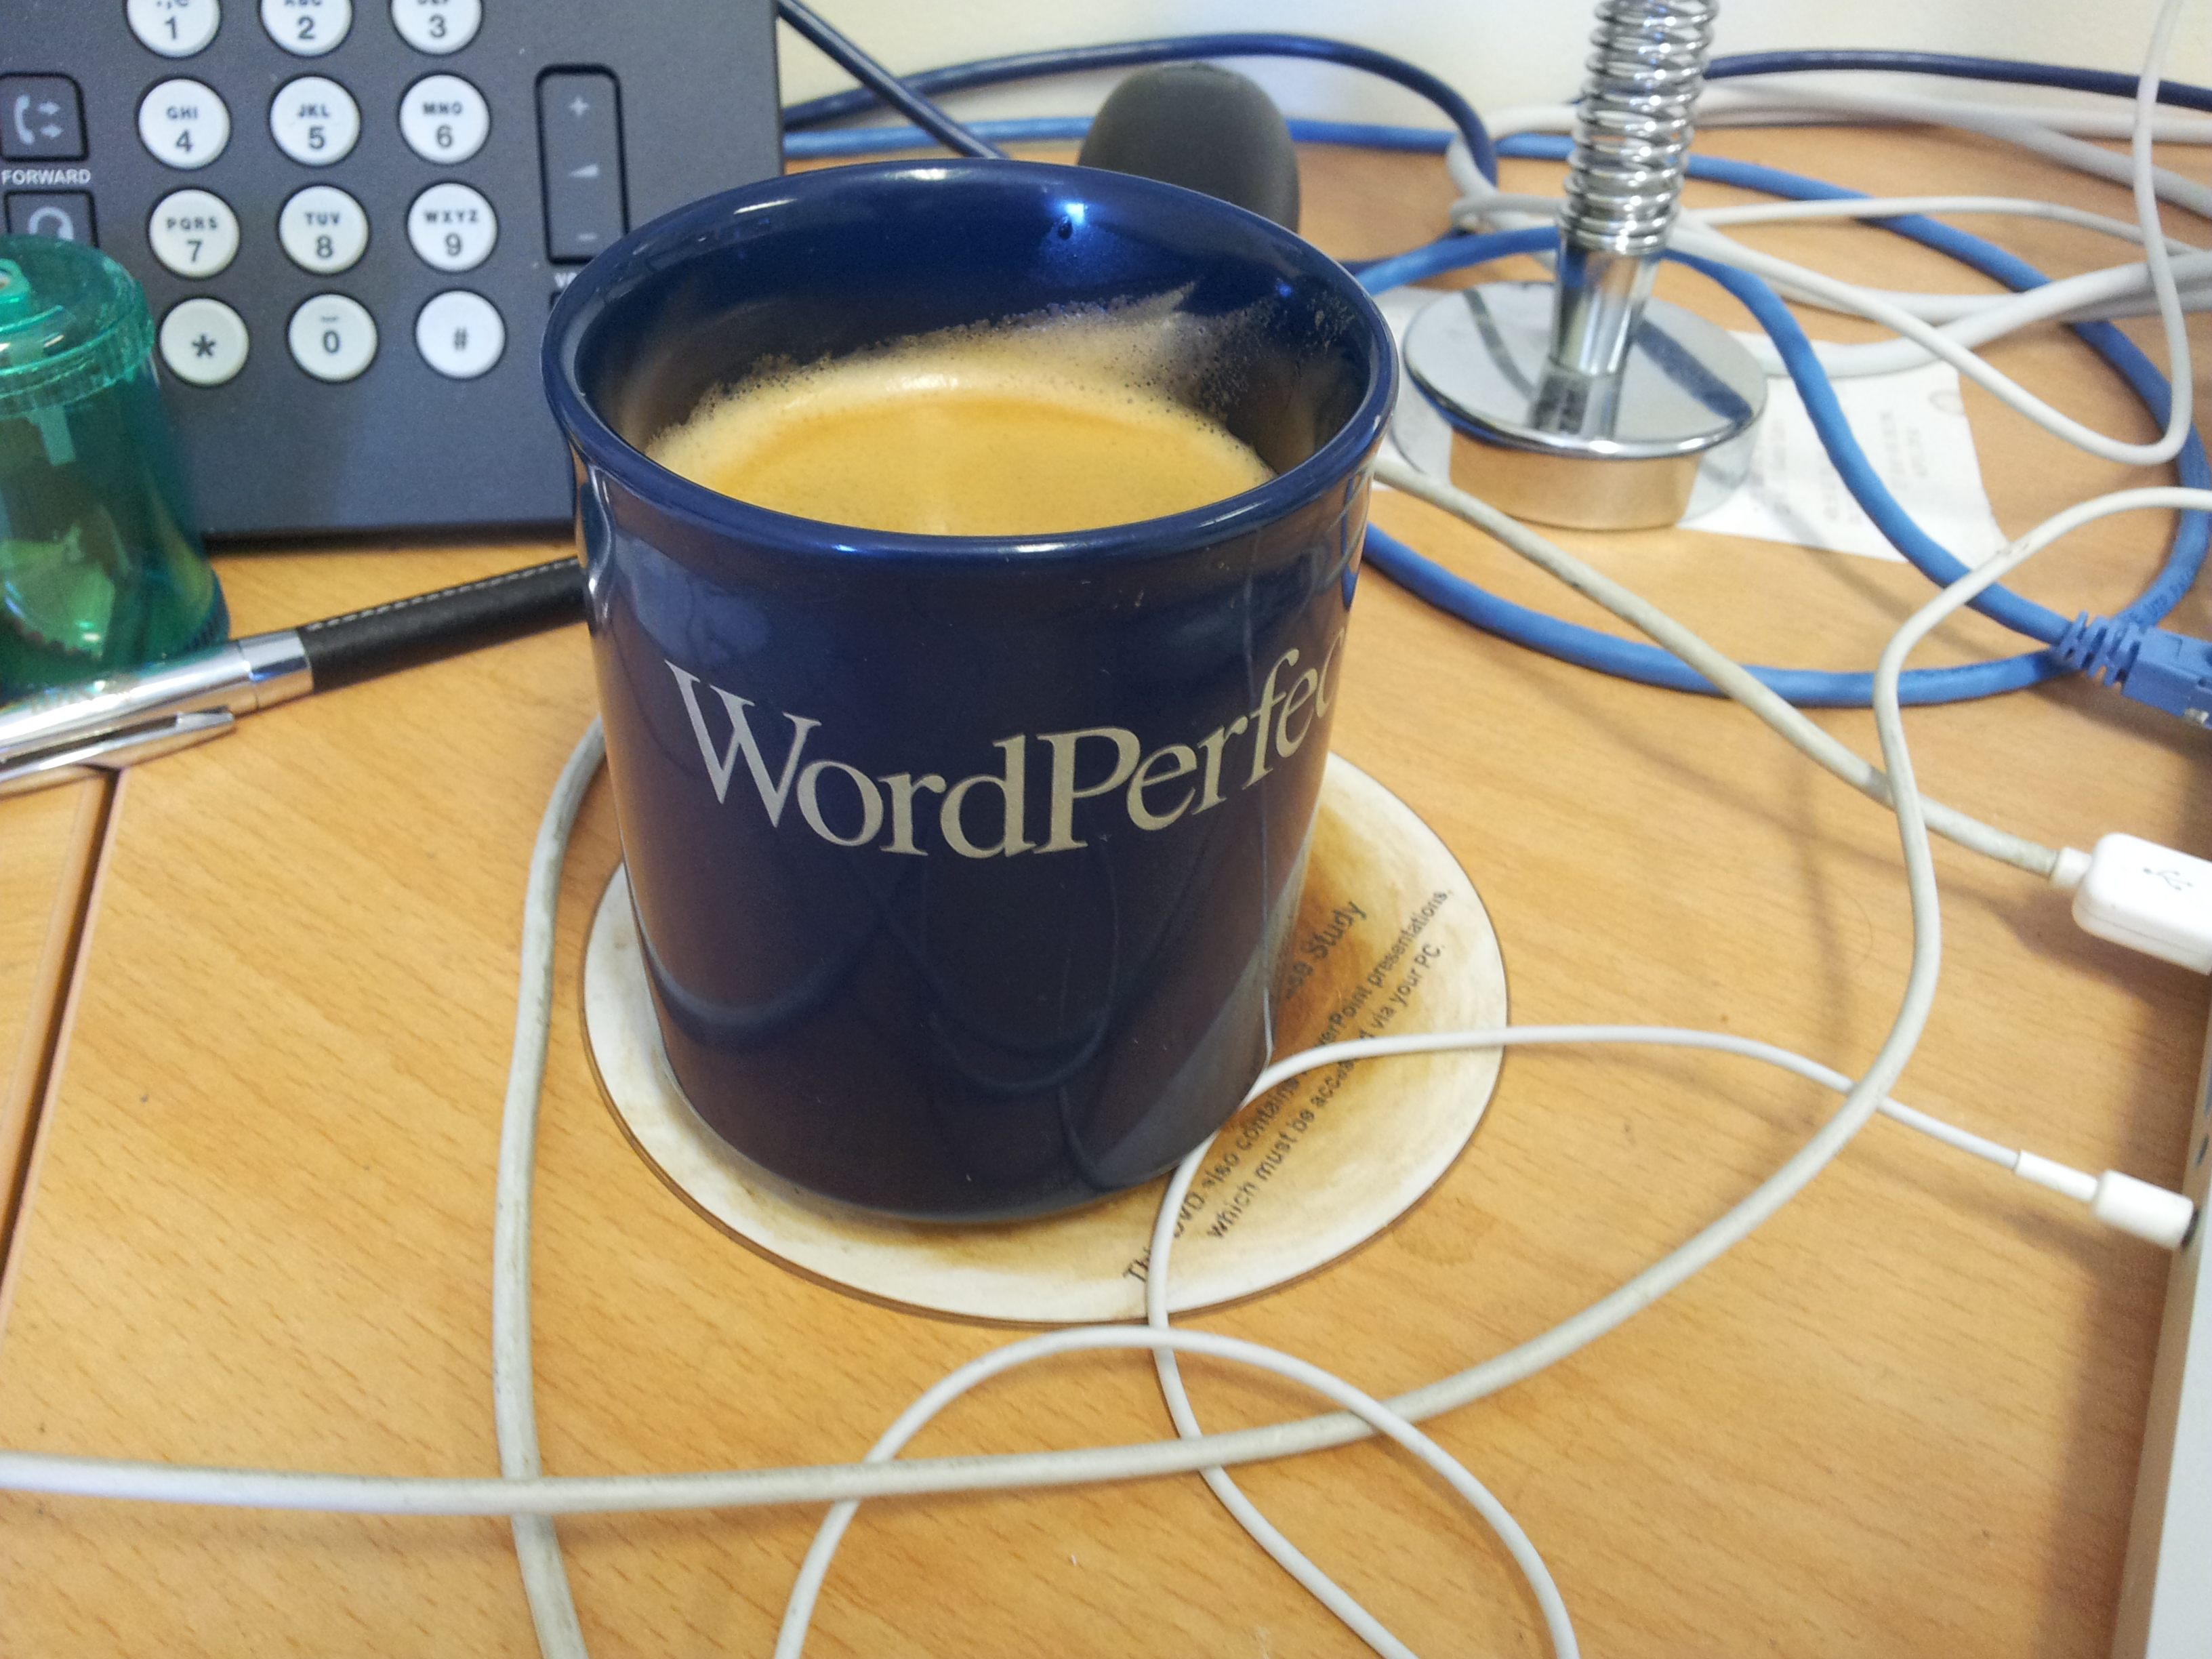 WordPerfect Mug